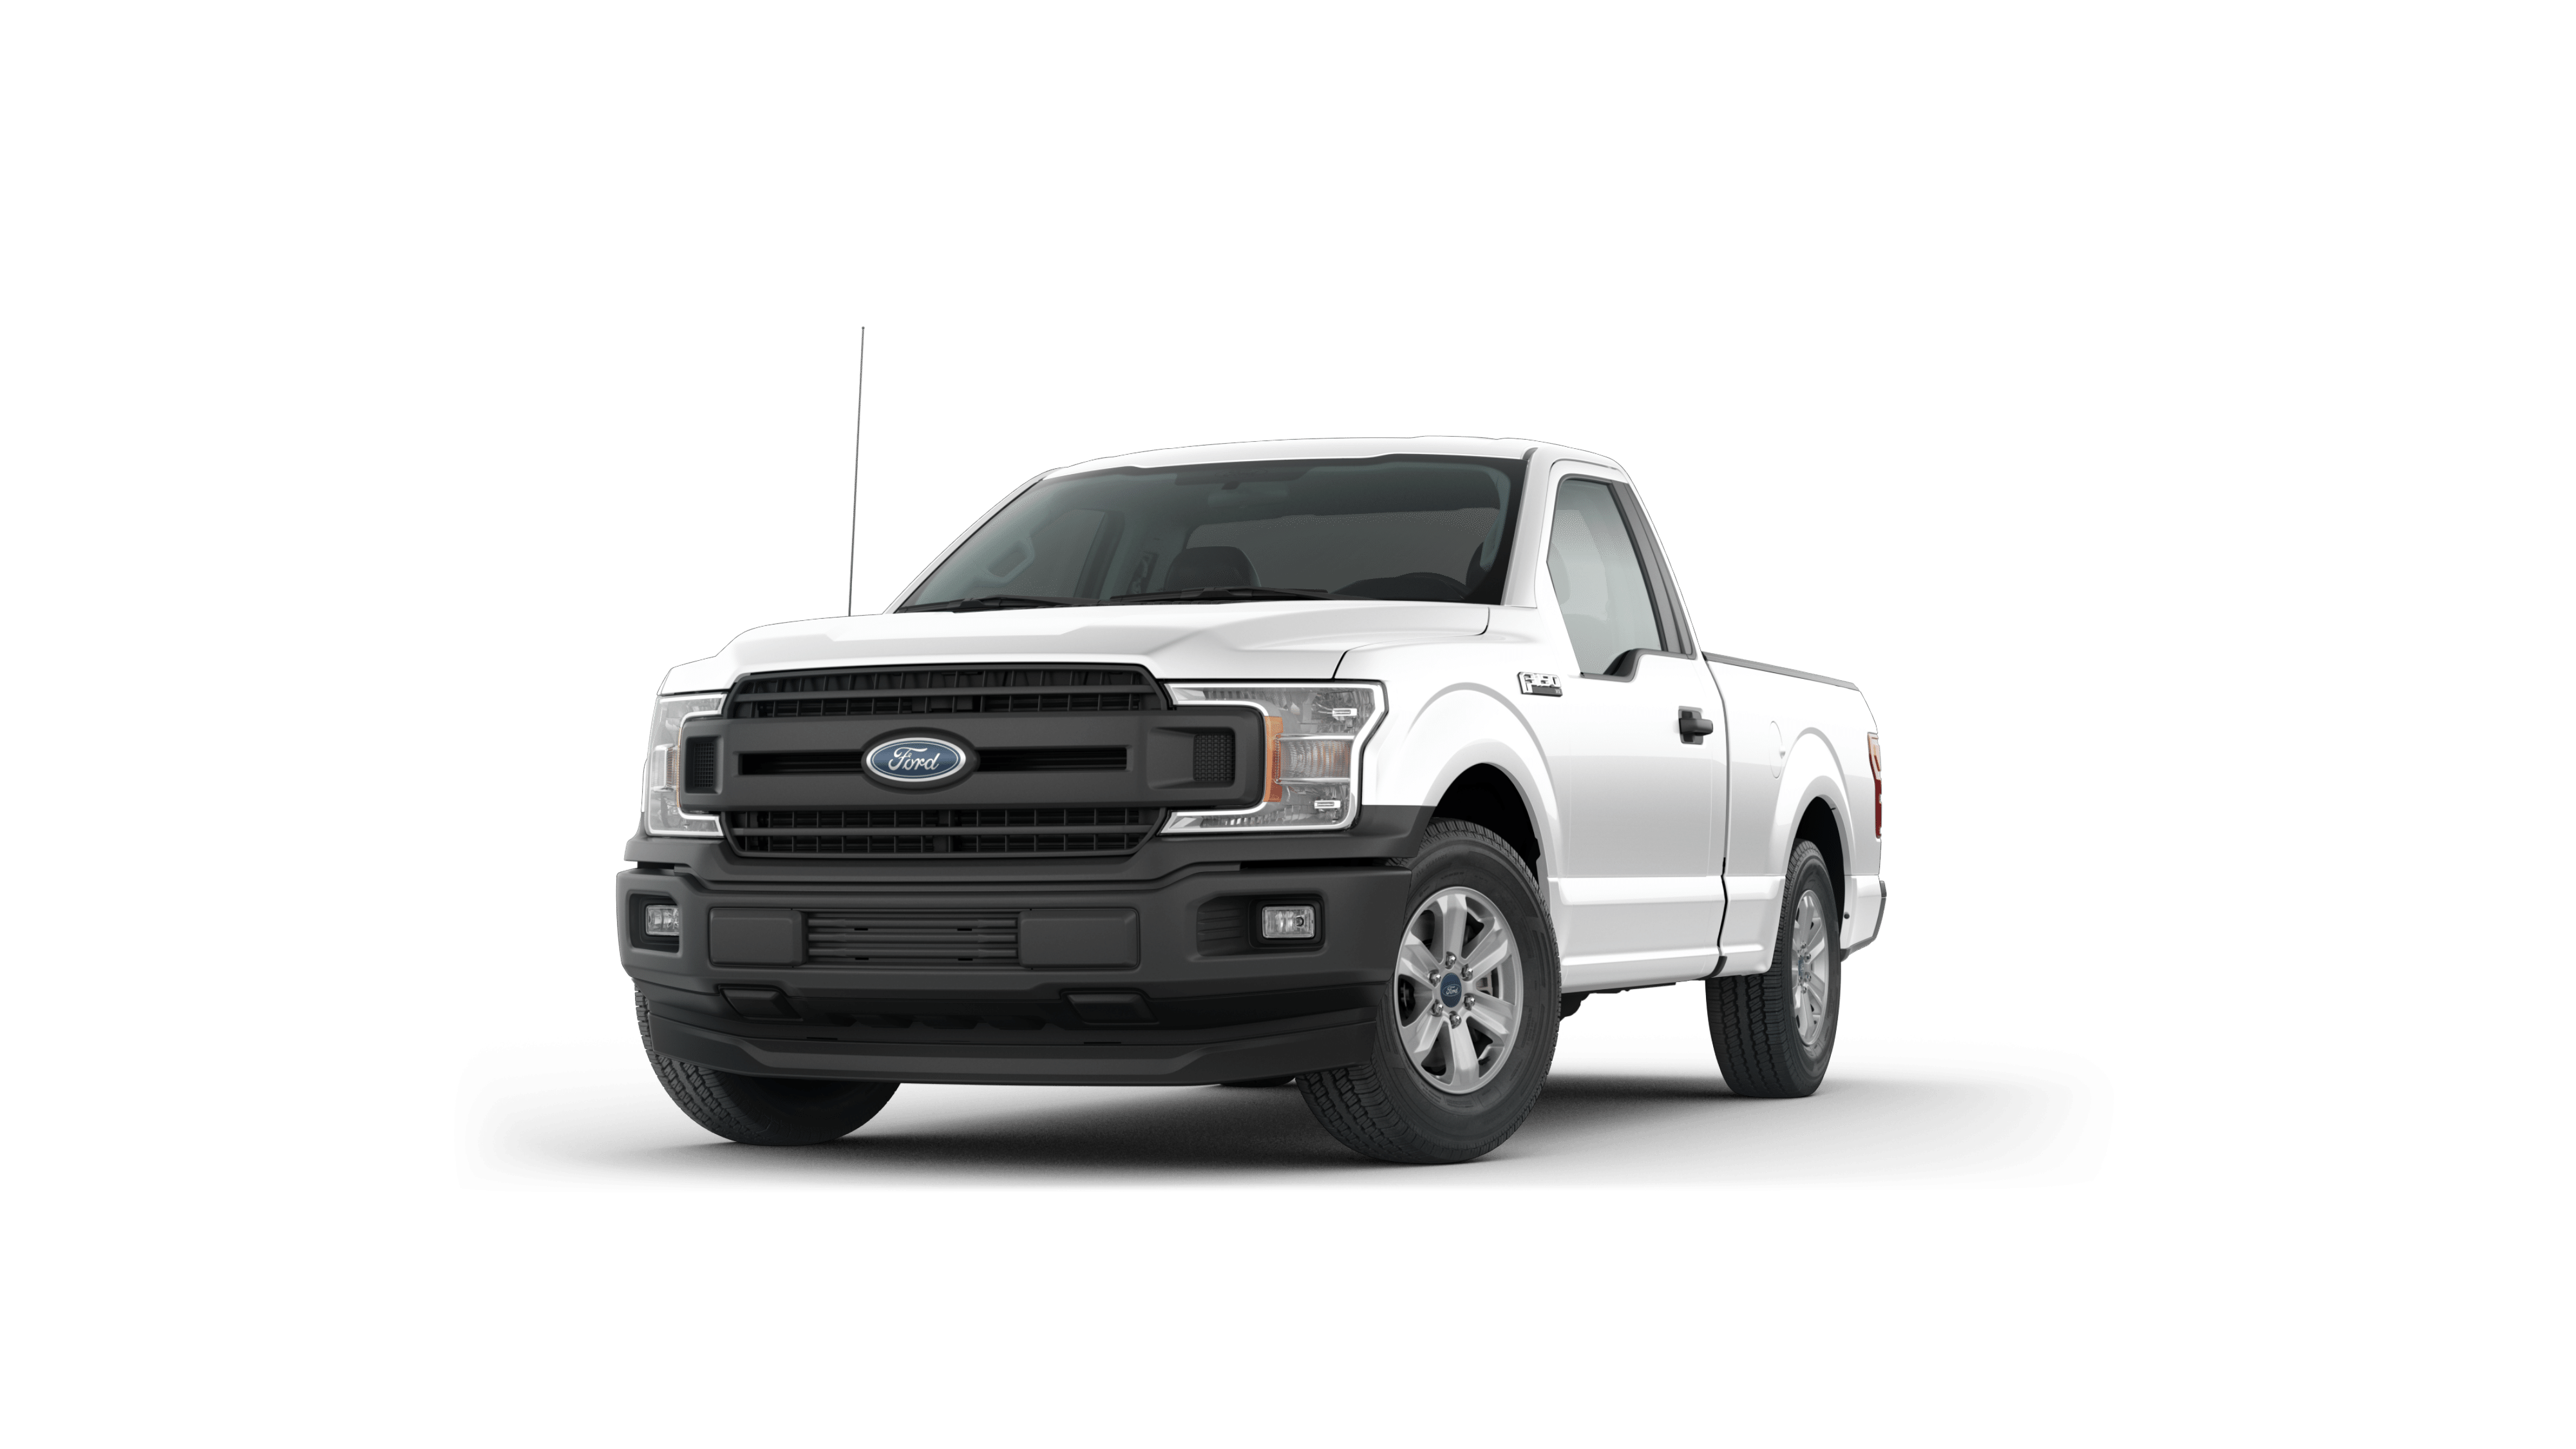 Central Ford Is A Dealer Selling New And Used Cars In South 2006 F 150 Fuel Filter Removal Tool 2018 Vehicles